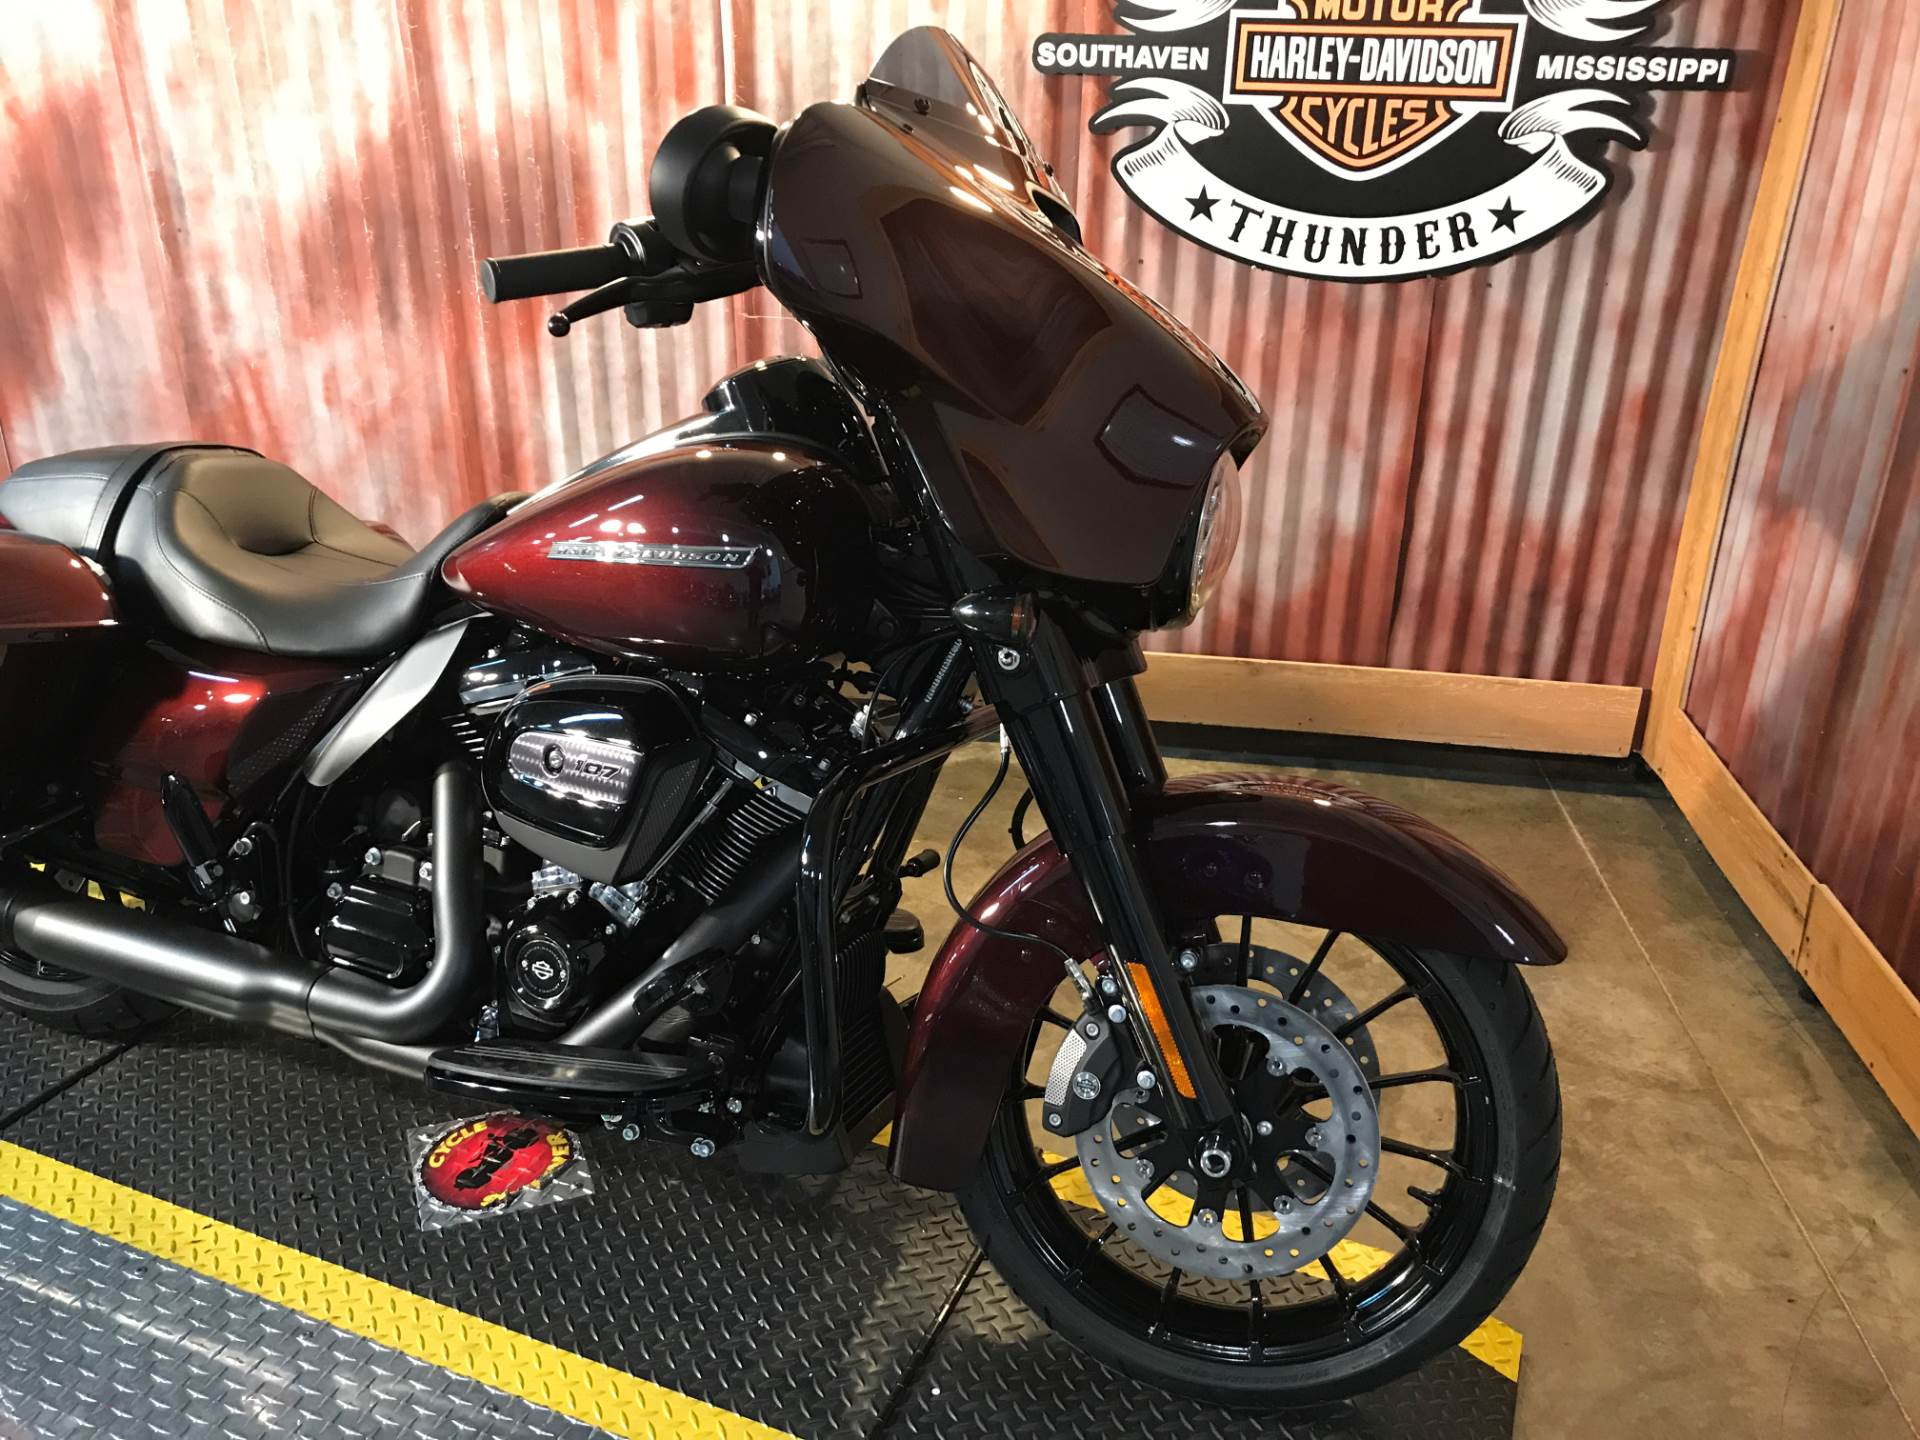 2018 Harley-Davidson Street Glide® Special in Southaven, Mississippi